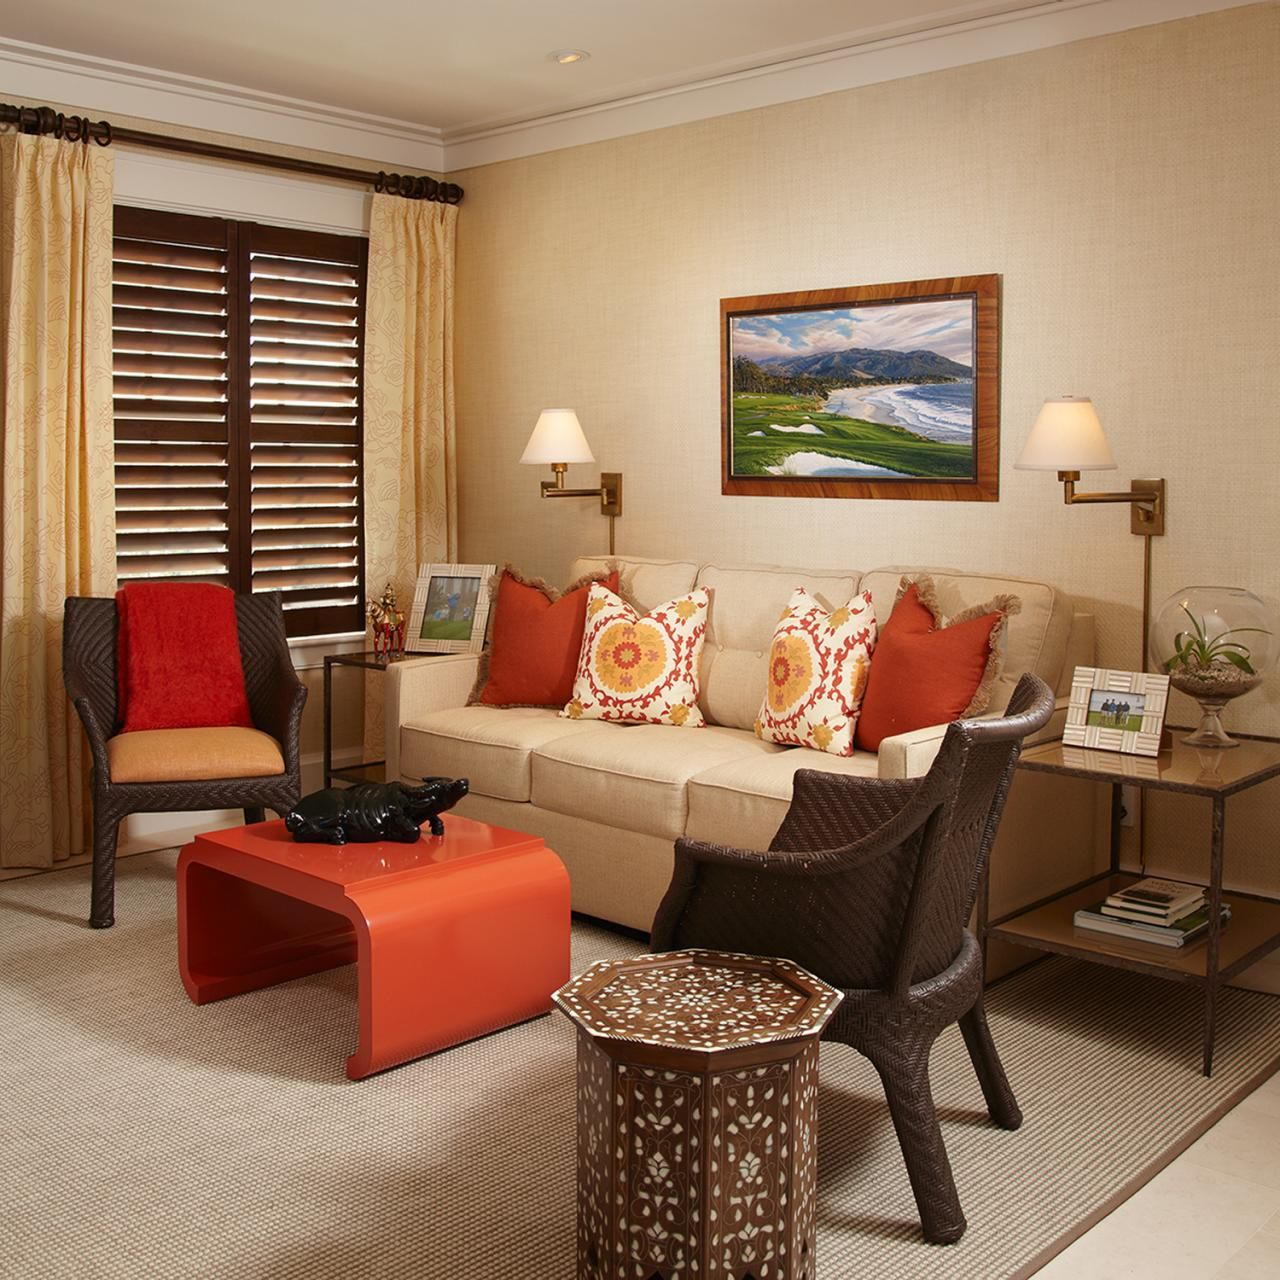 Burnt Orange And Brown Living Room Decor Lowes Paint Colors Interior Check More At Http Living Room Orange Burnt Orange Living Room Brown Living Room Decor